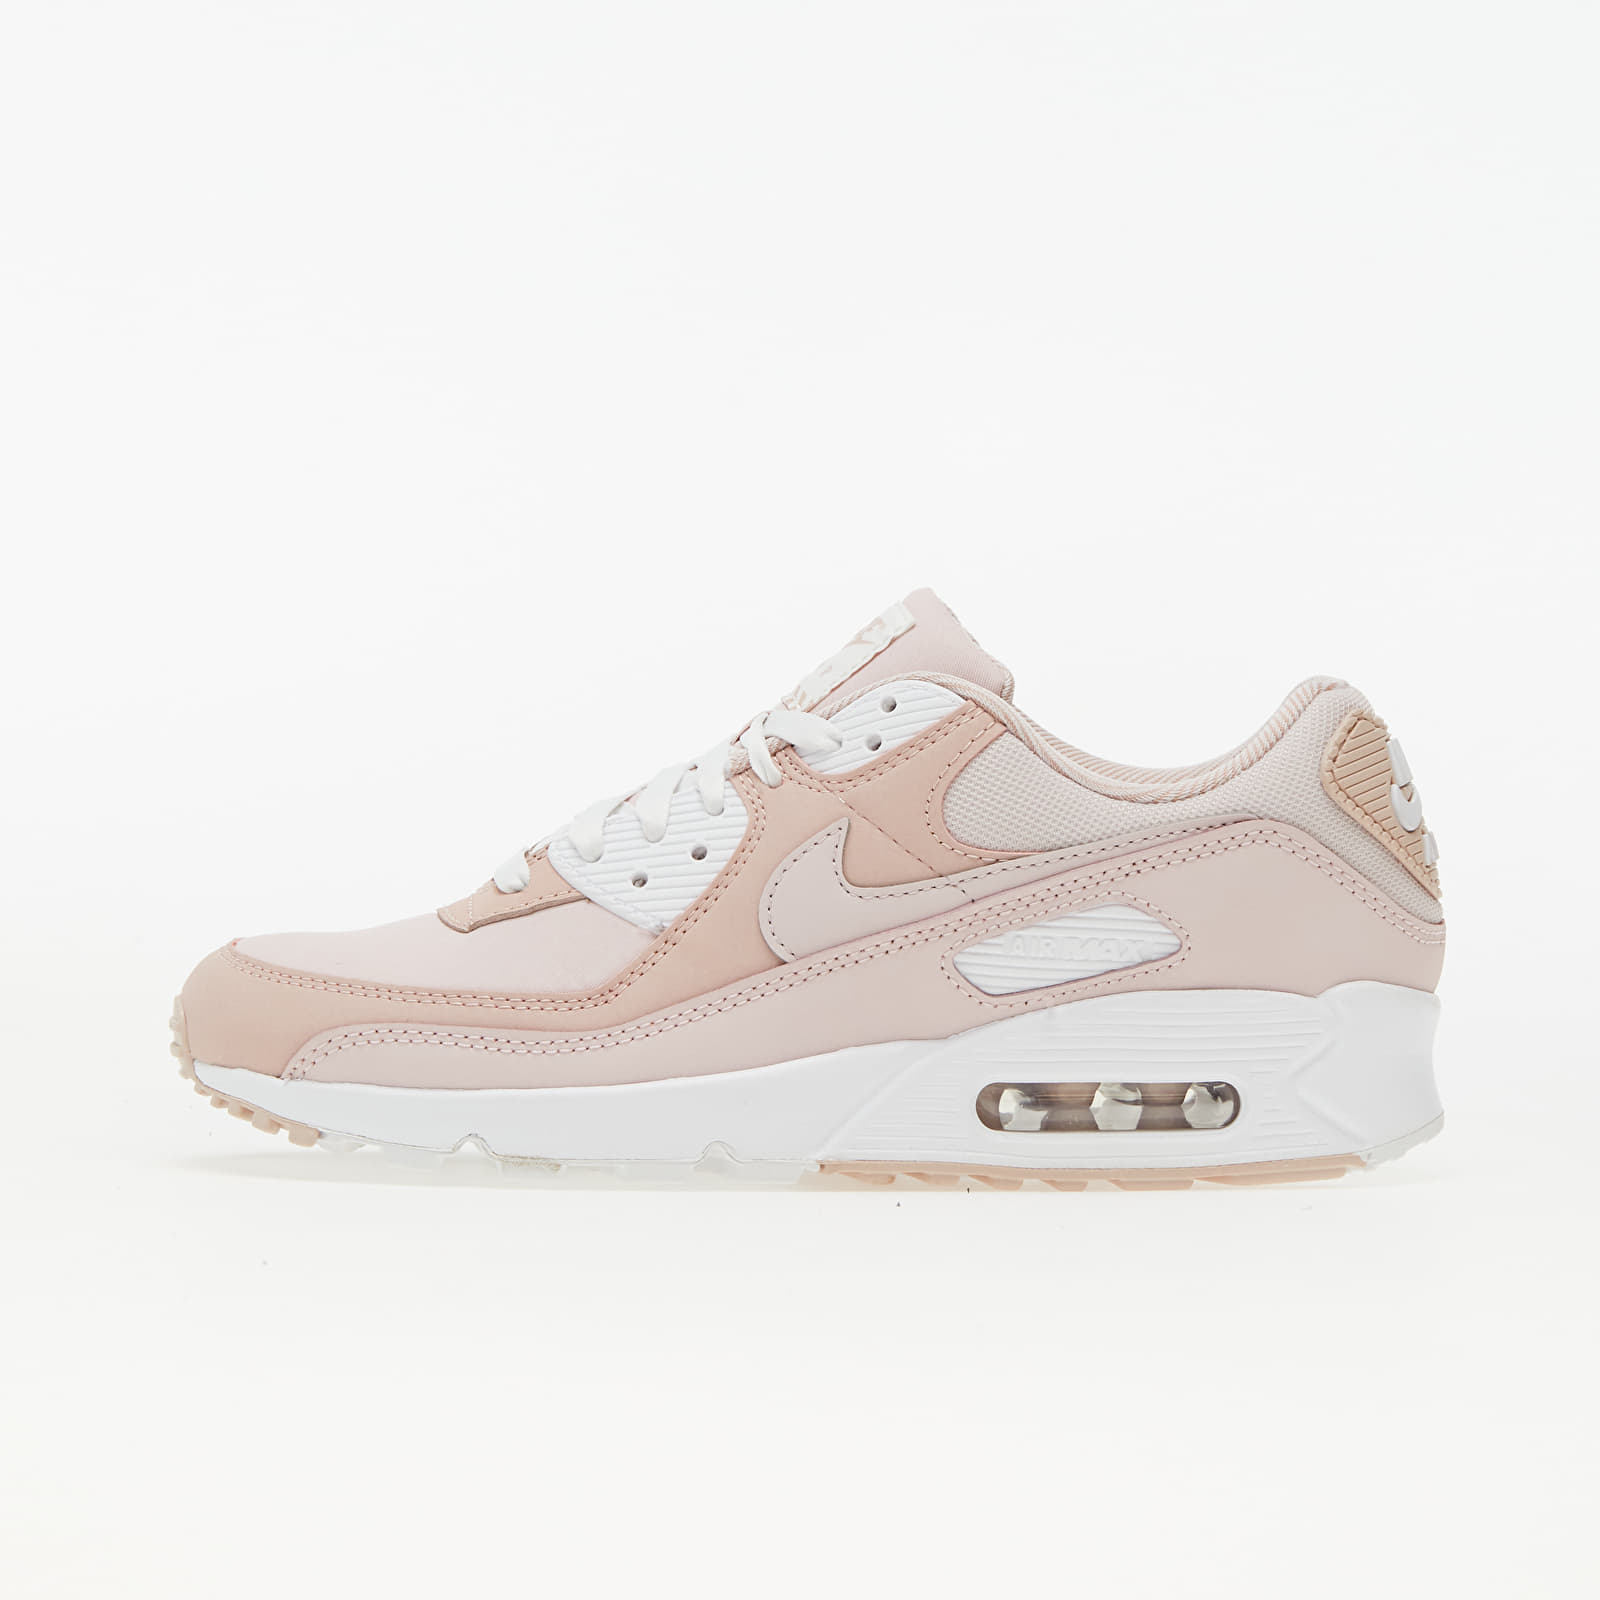 Nike W Air Max 90 Barely Rose/ Barely Rose-Pink Oxford DJ3862-600